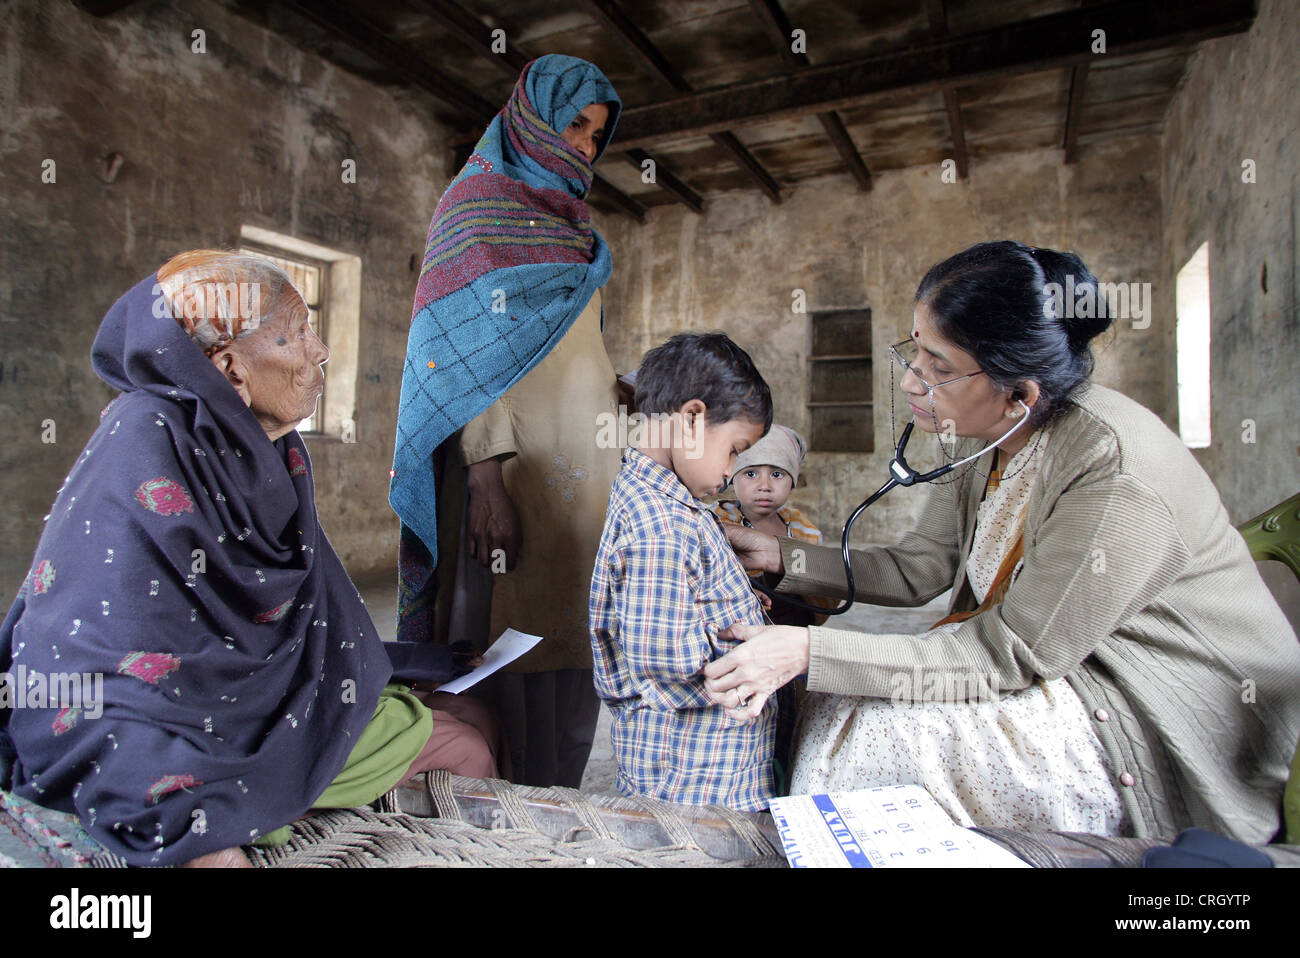 Volunteer Doctor (right) examines sick inhabitants of a village in India without any fee/royalty - Stock Image